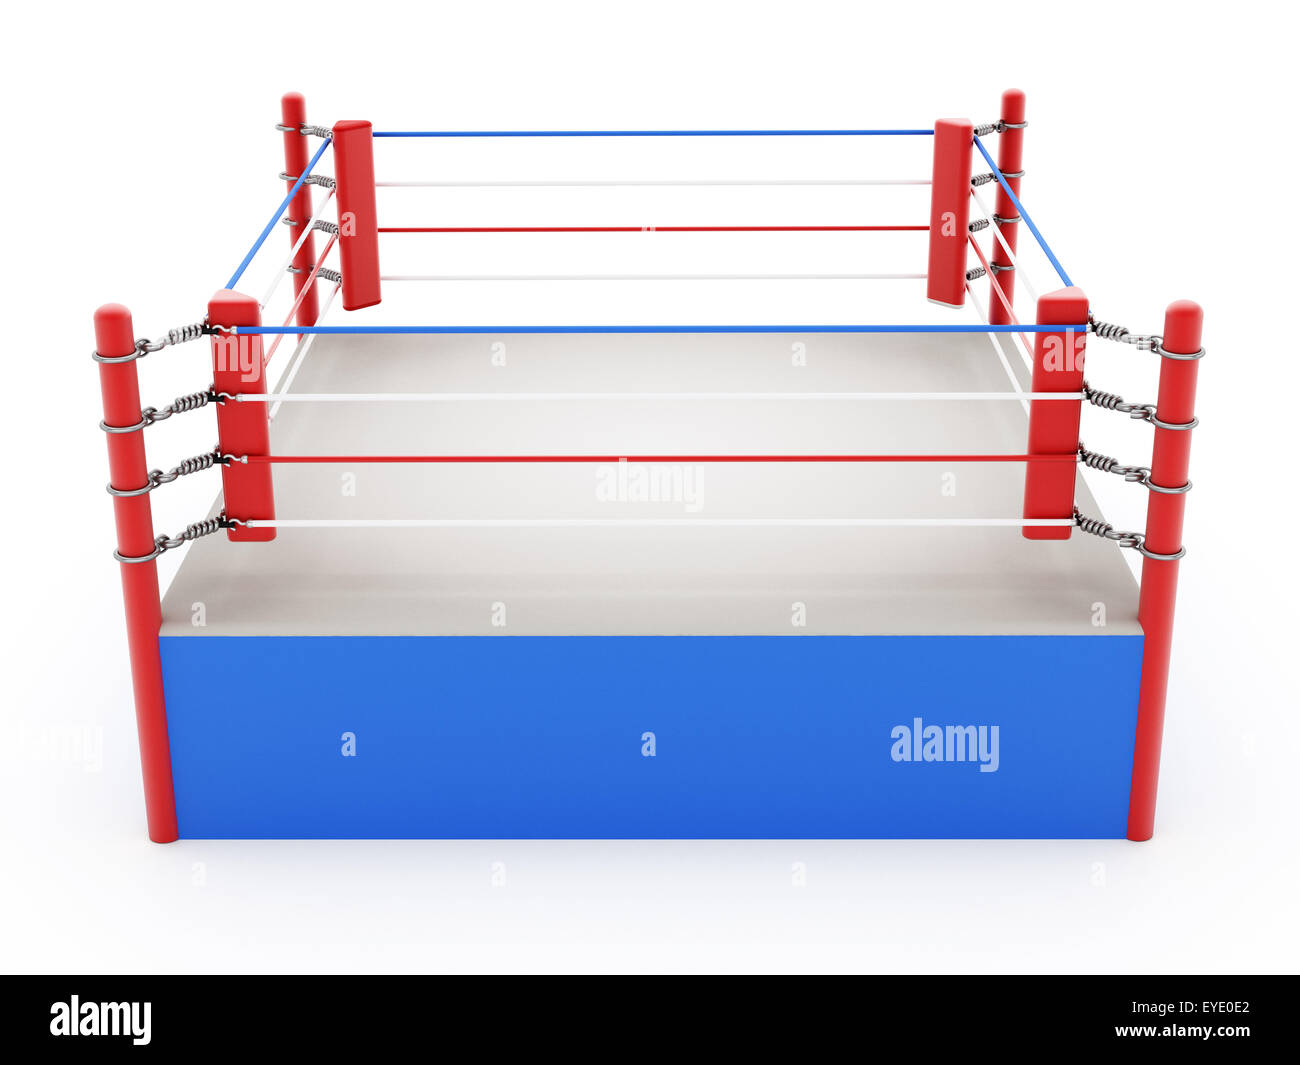 Boxing ring isolated on white background - Stock Image